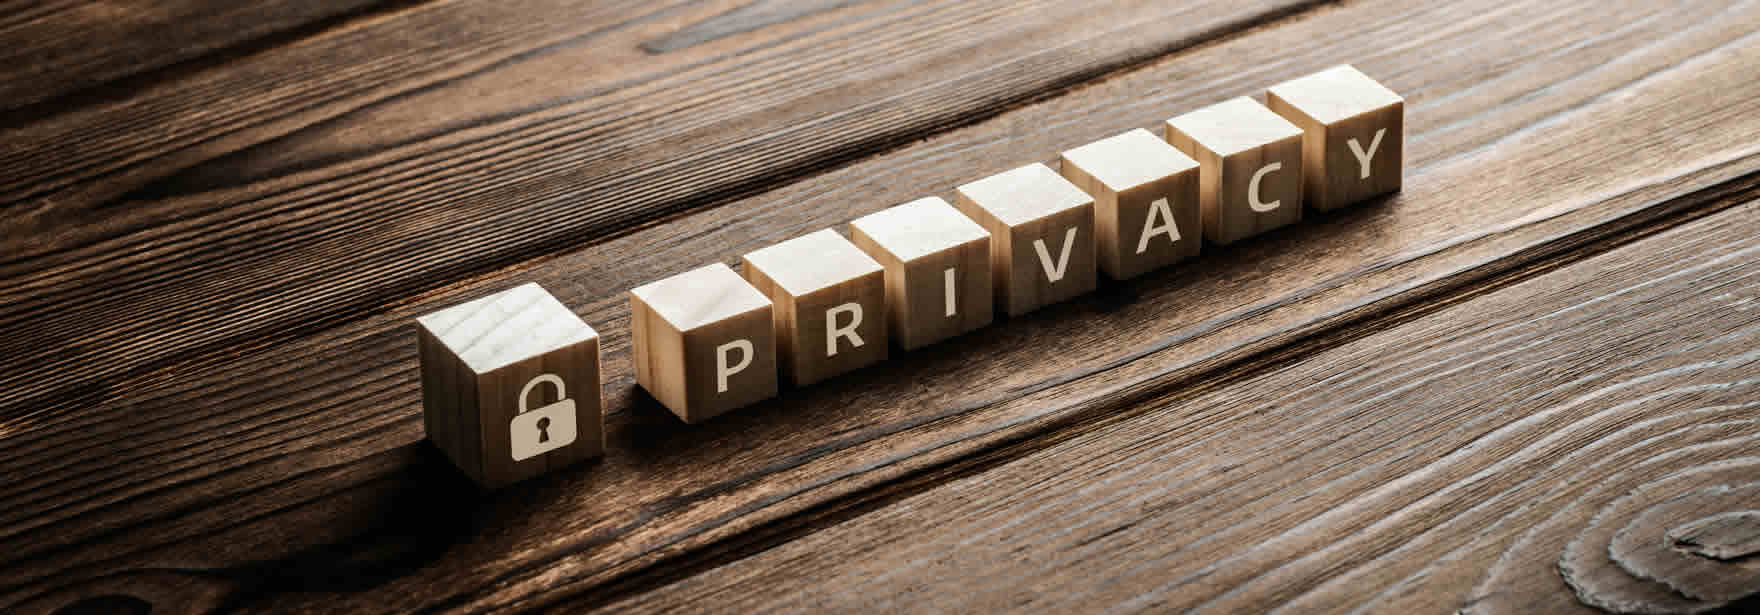 Privacy Policy for Valley Mortgage, Inc.